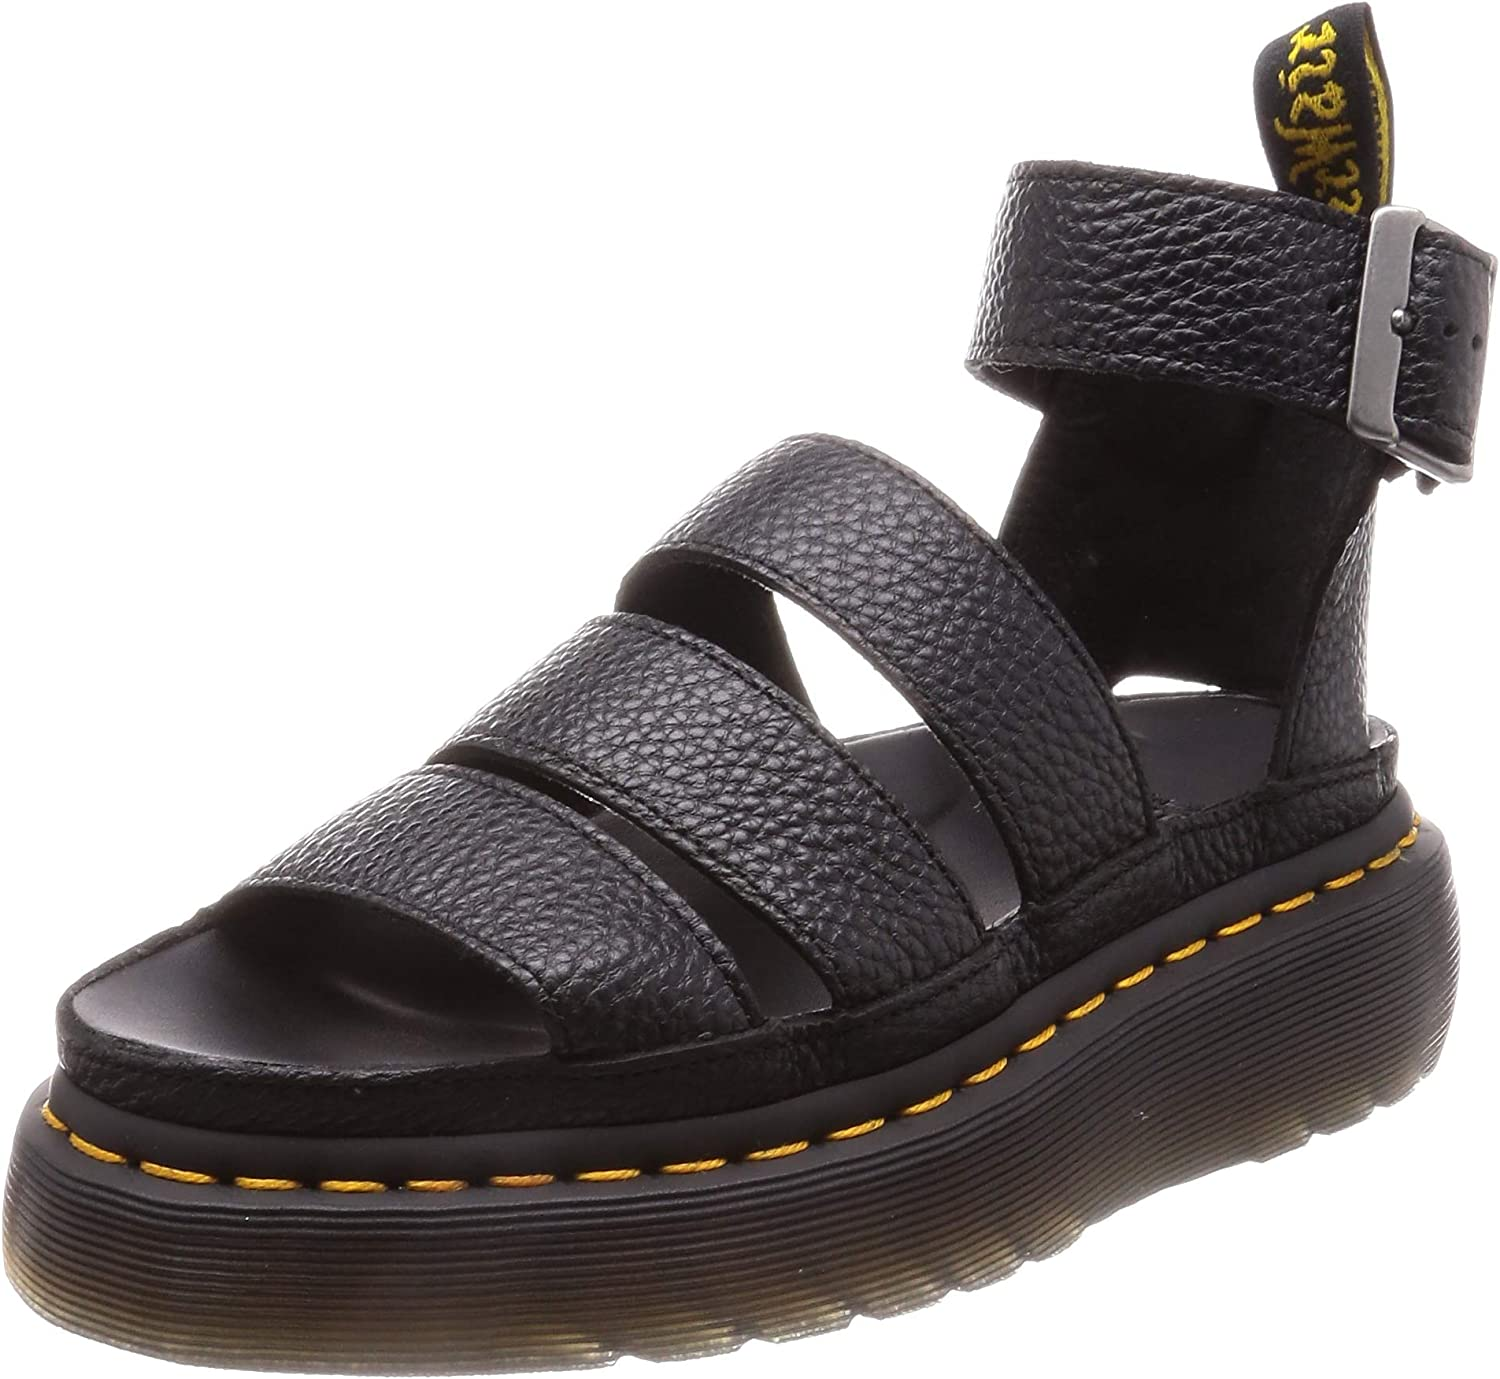 Dr.Martens Womens Clarissa II Quad Aunt Sally Leather Sandals